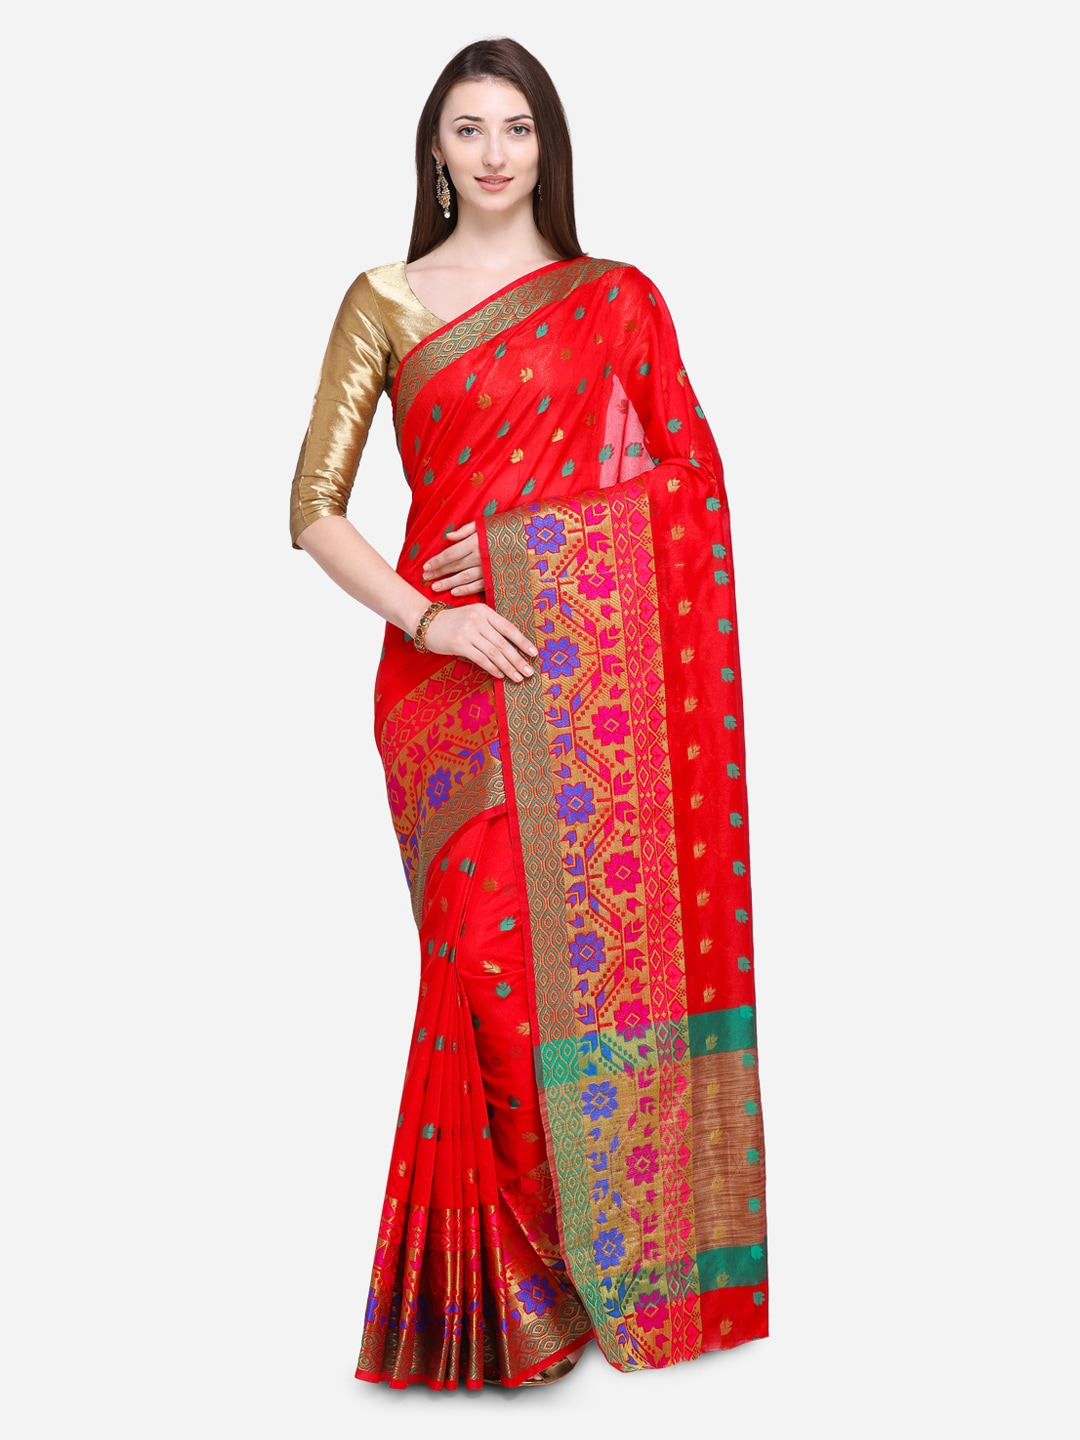 a3b2f1fe1f6 Chanderi Sarees - Buy Chanderi Sarees Online in India